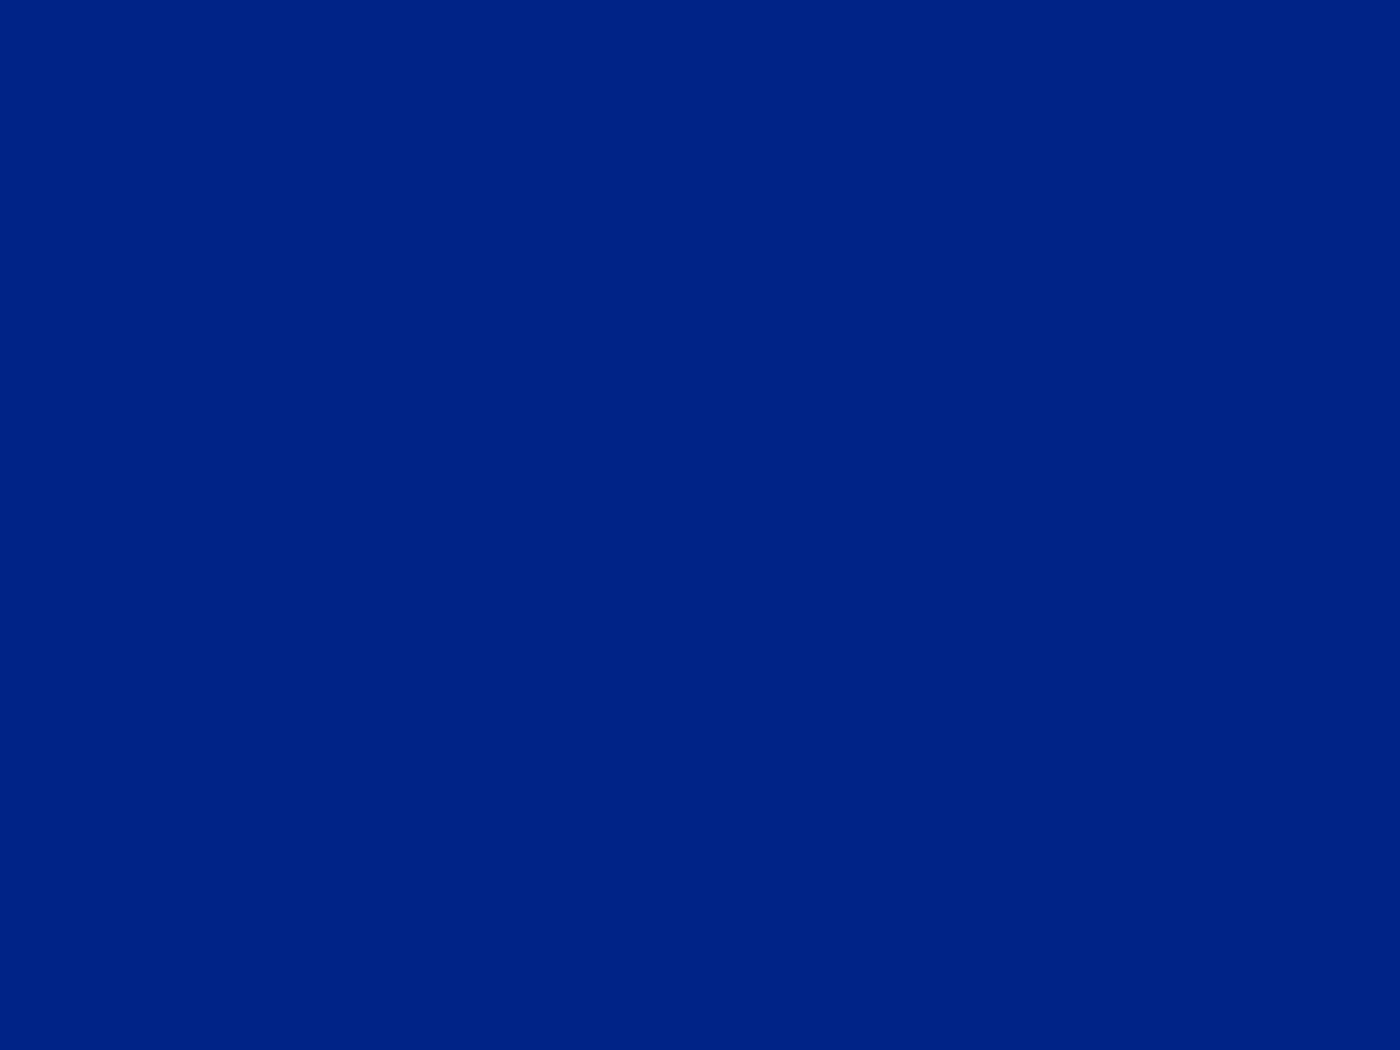 1400x1050 Resolution Blue Solid Color Background